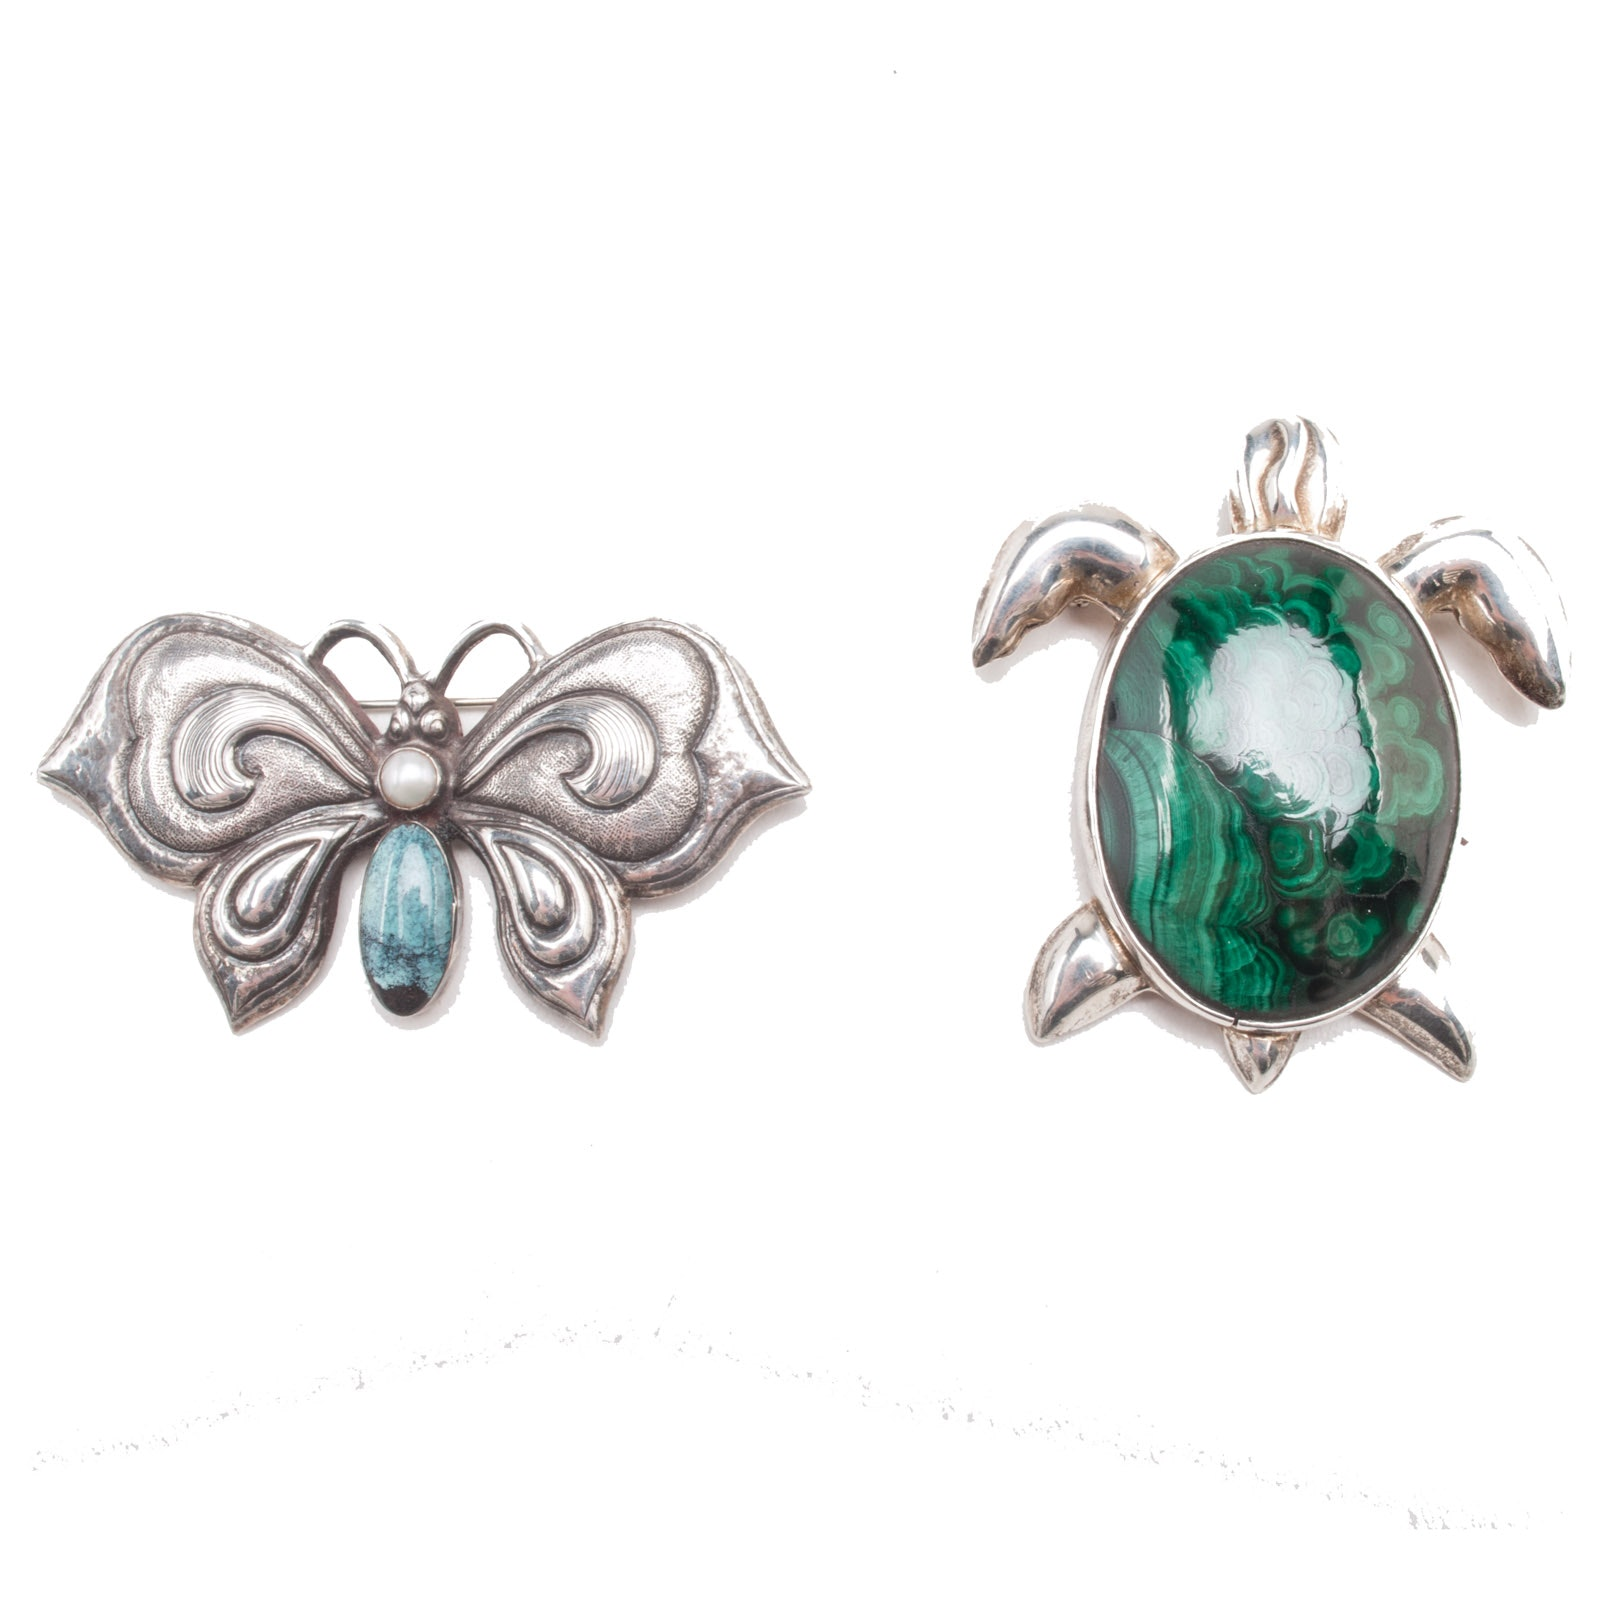 Figural Sterling Silver Brooches